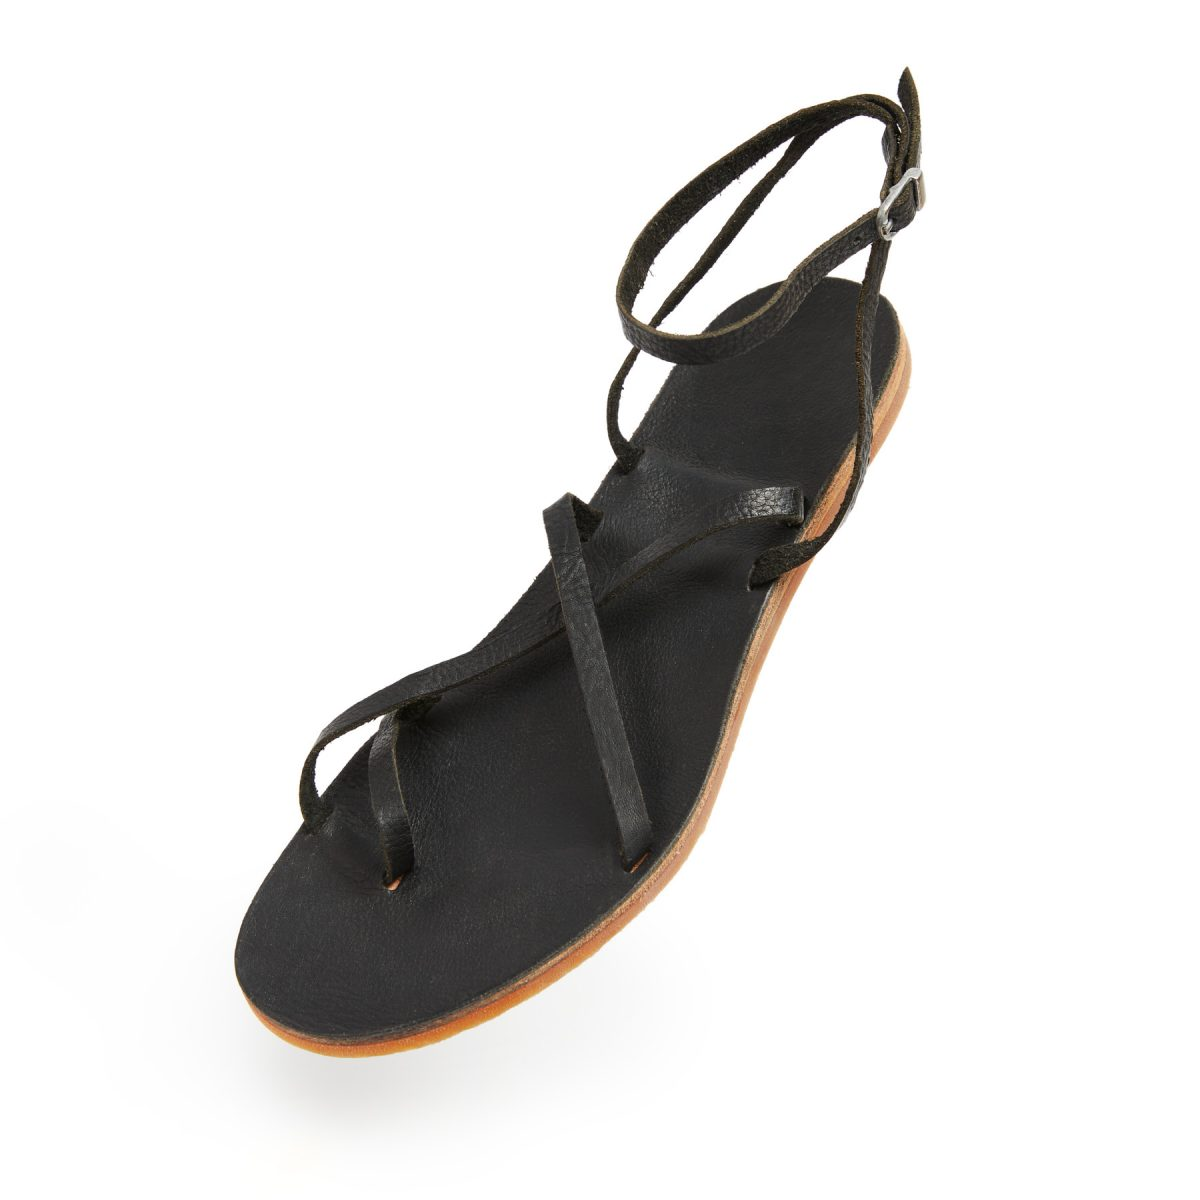 Sandals with hevea sole